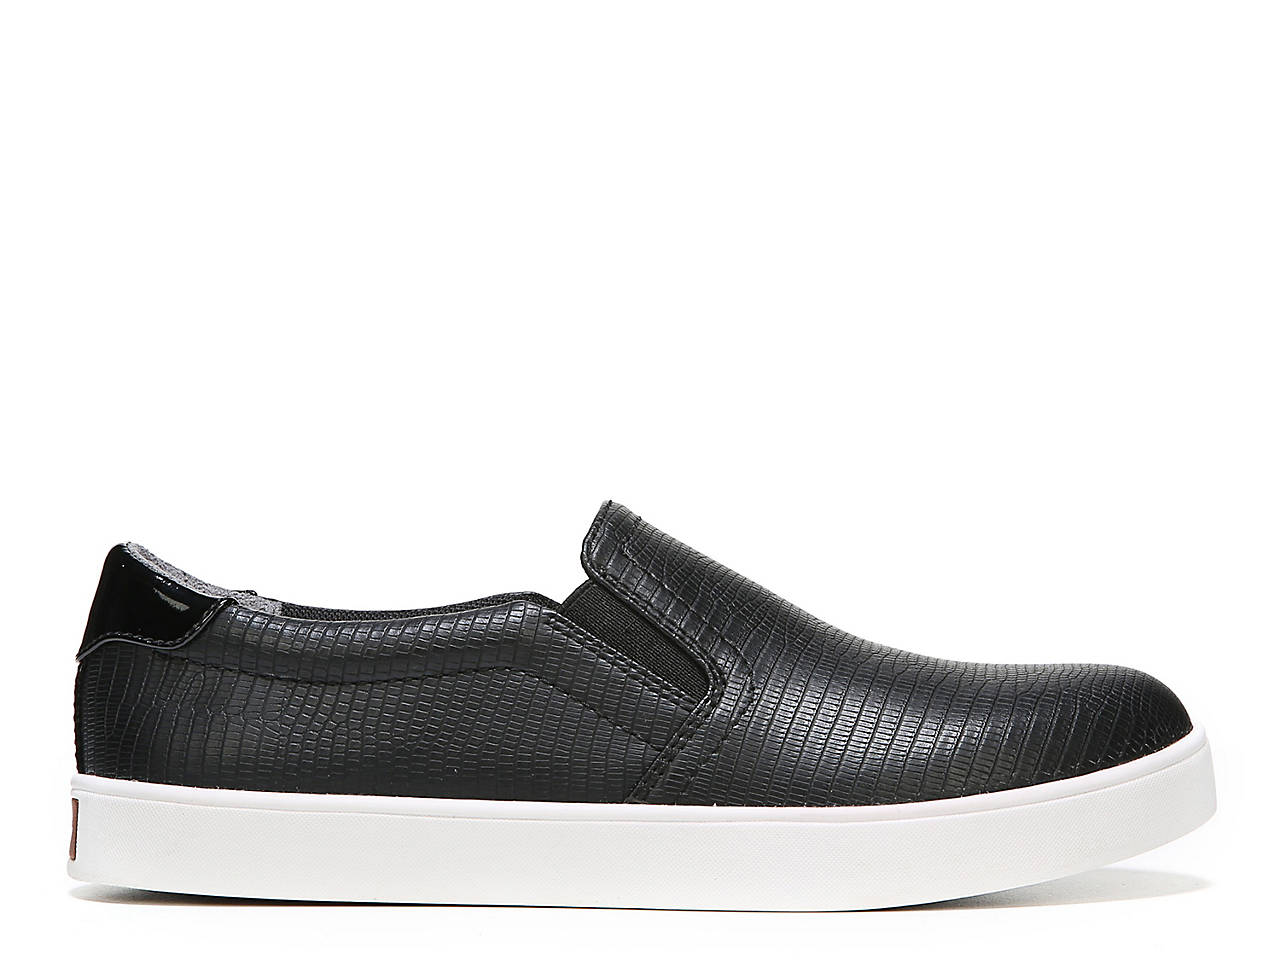 608b044a8039 Dr. Scholl s Madison Embossed Slip-On Sneaker Women s Shoes